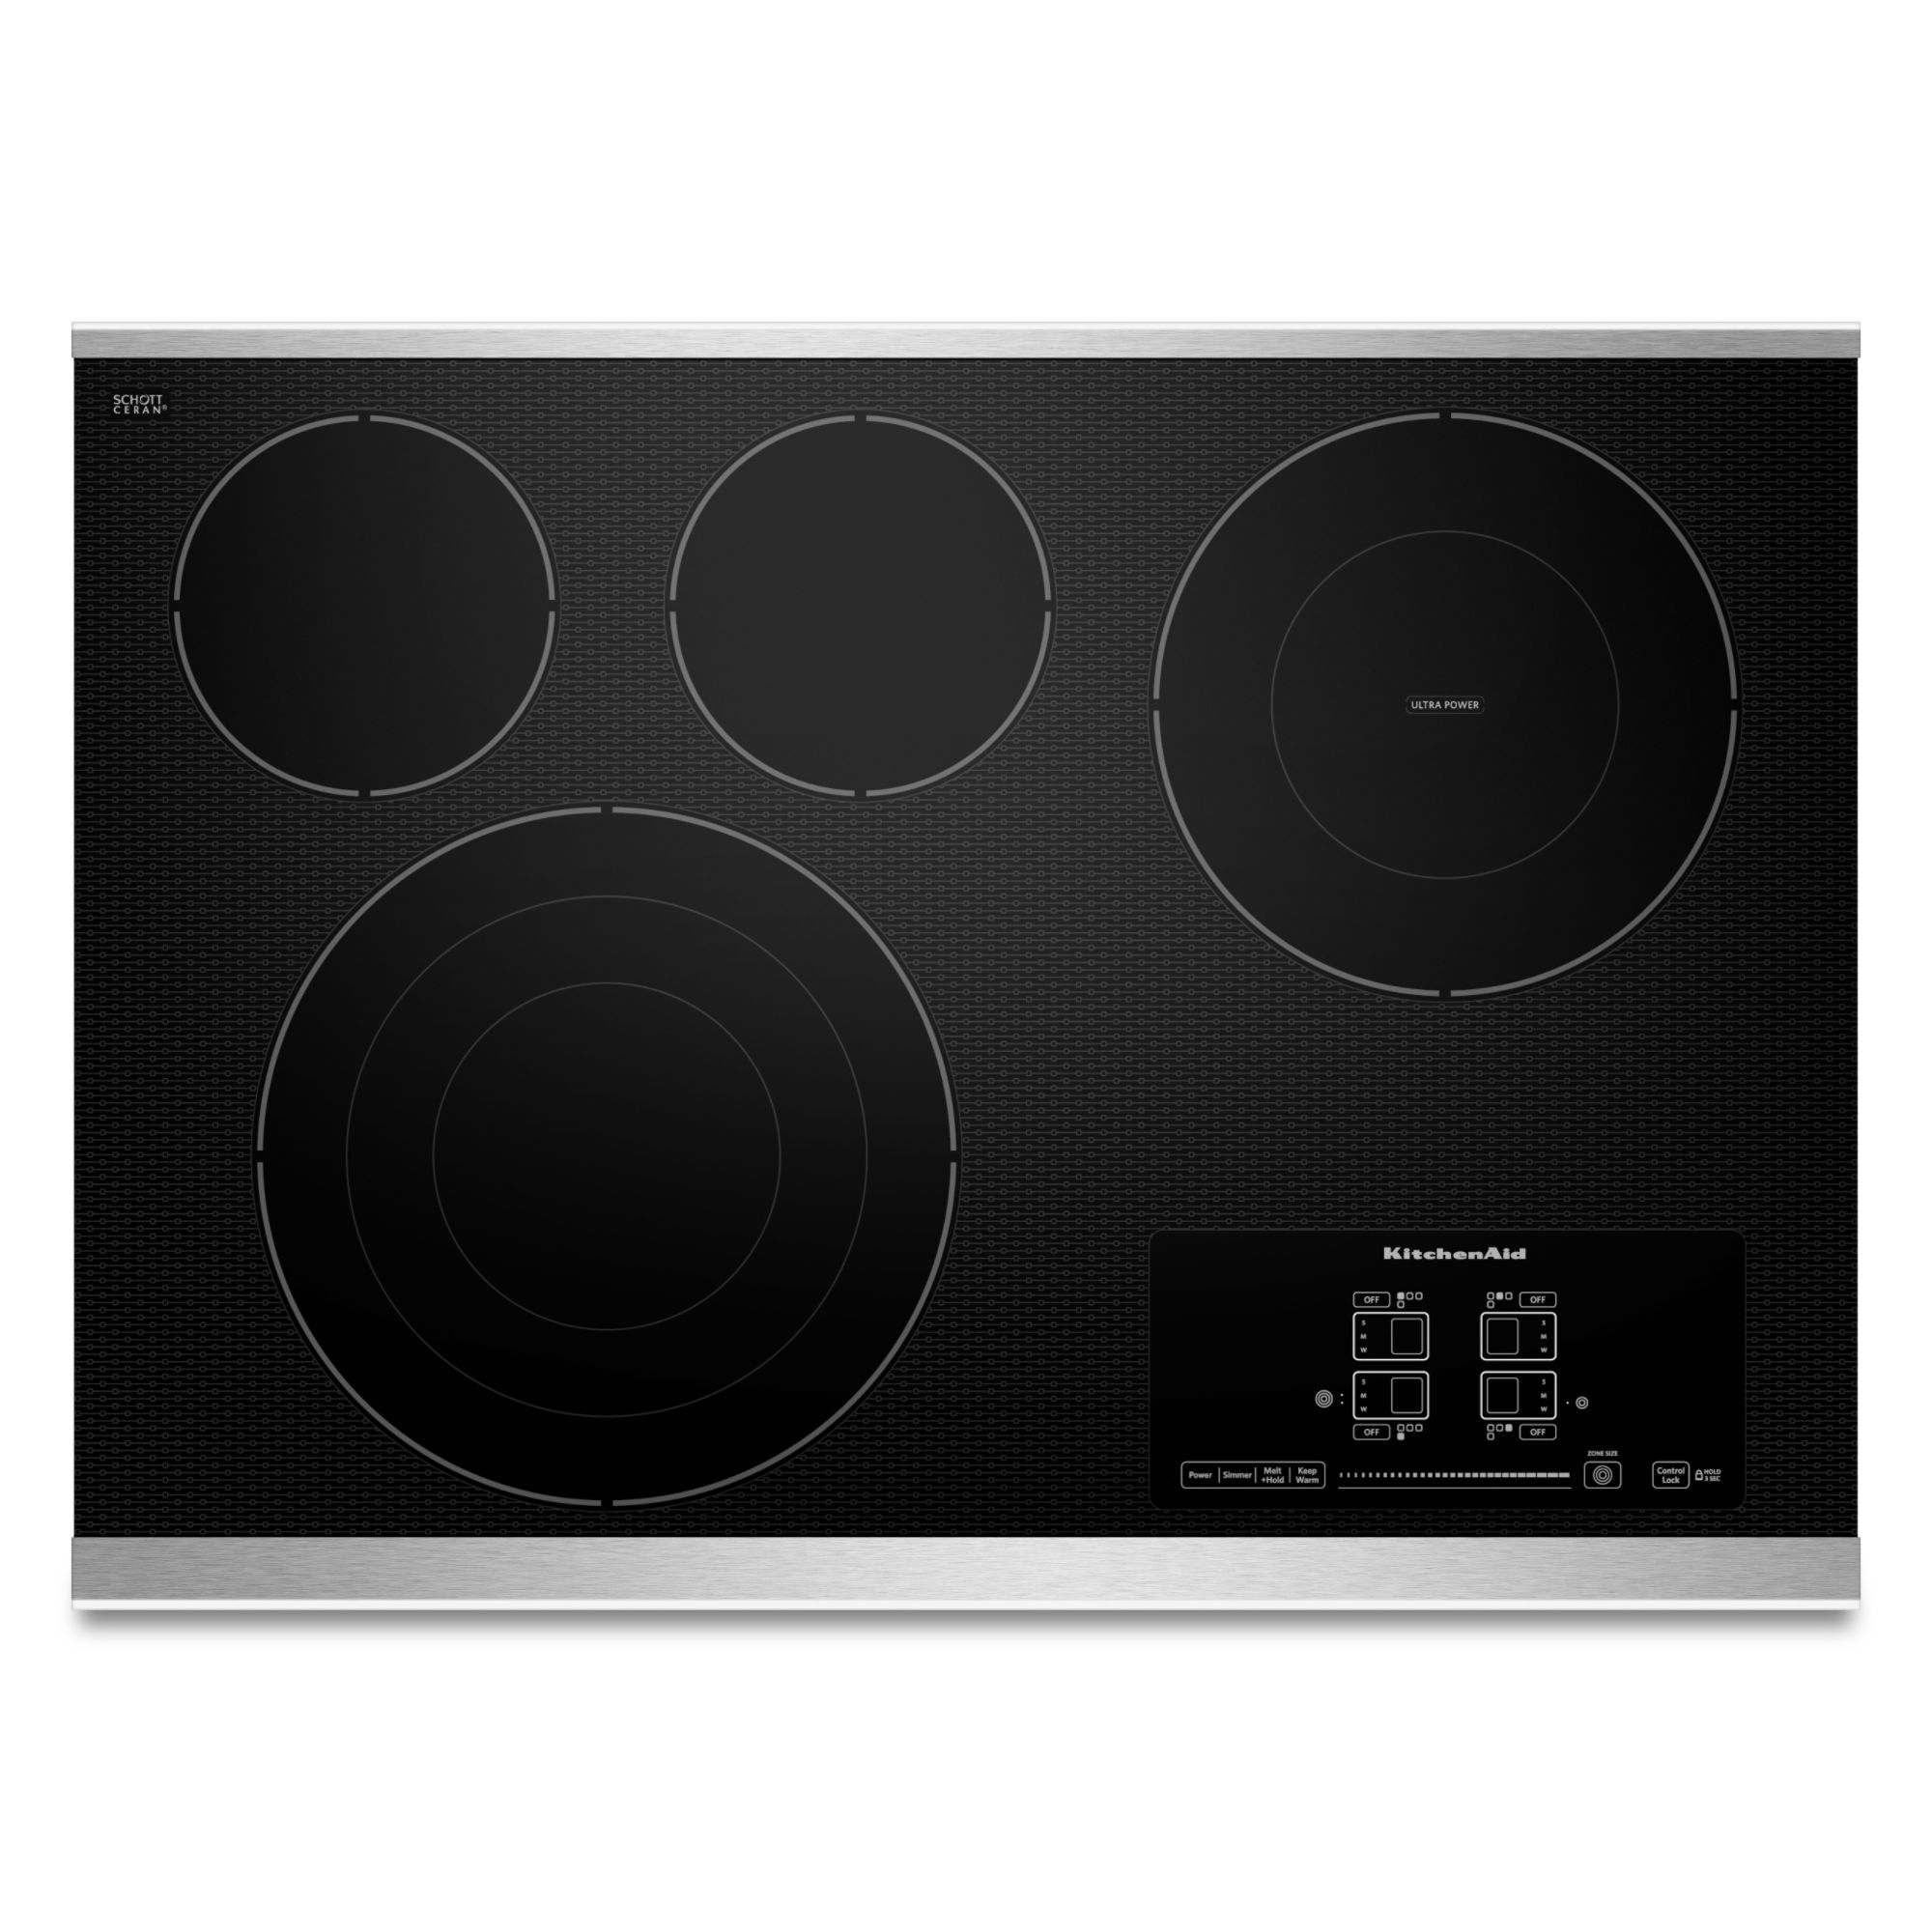 KitchenAid KECC607BSS 30 4-Element Electric Cooktop with Even-Heat™ Technology - Stainless Steel